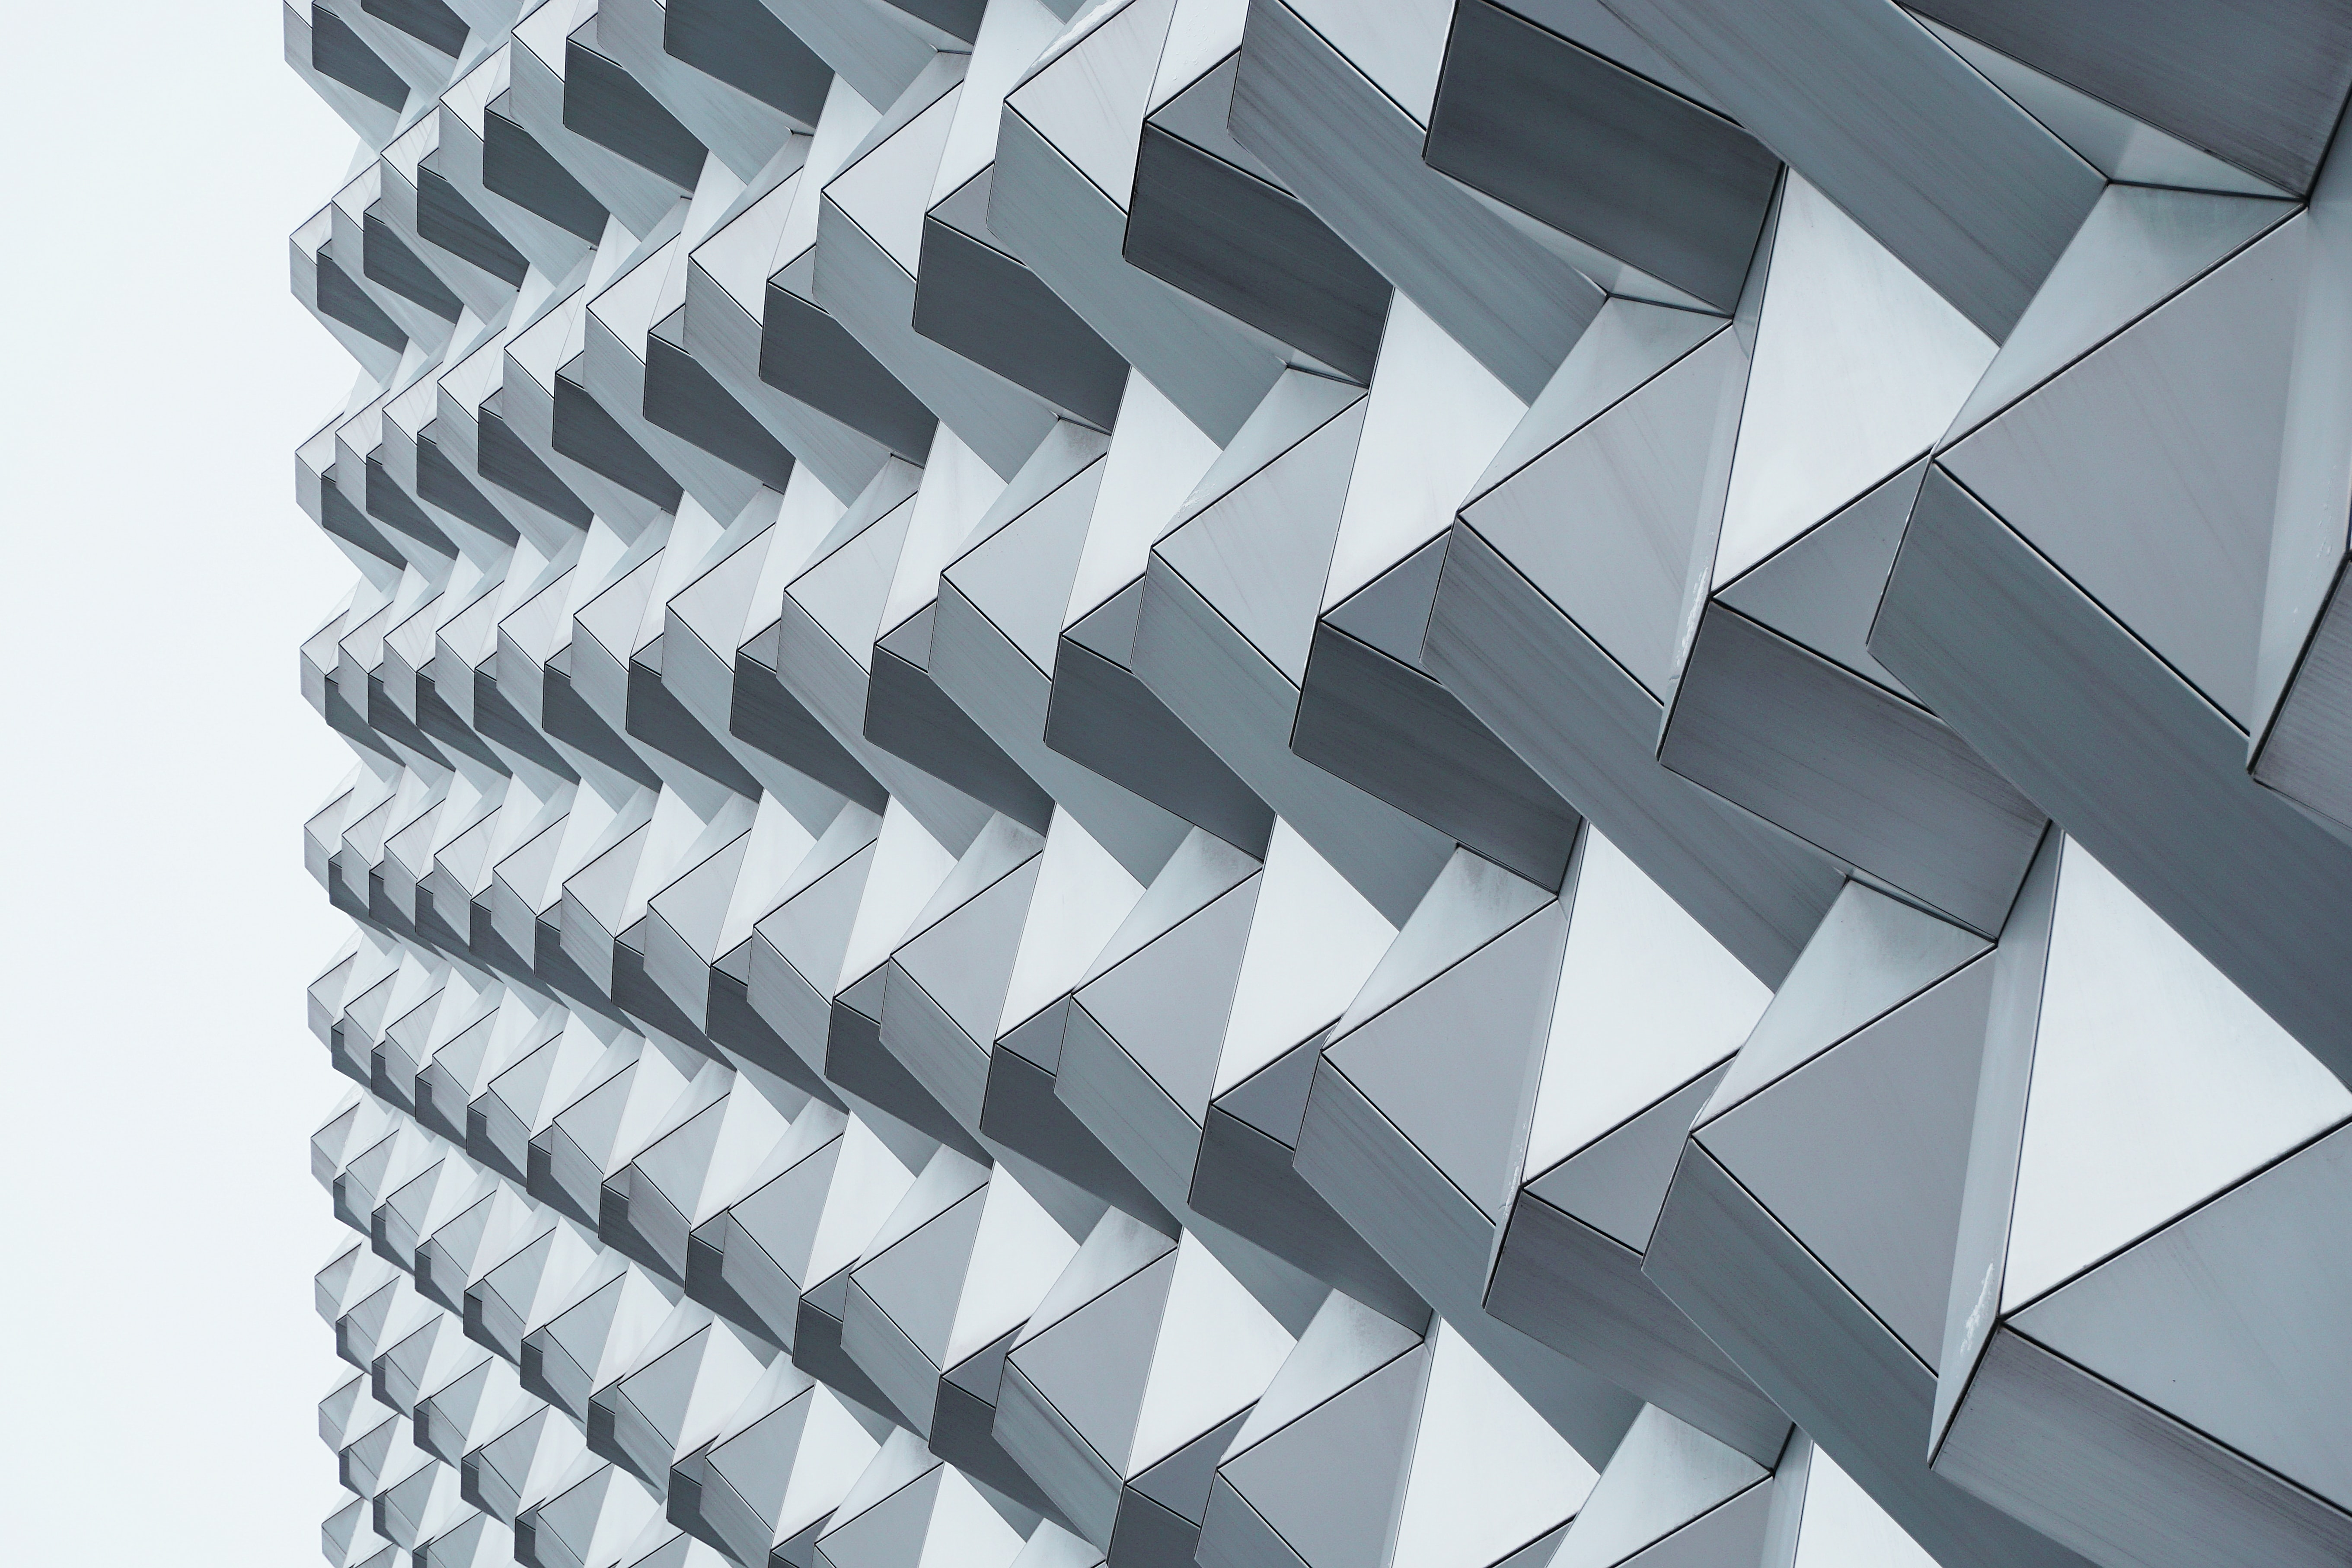 An abstract pattern in a gray building facade in Dresden